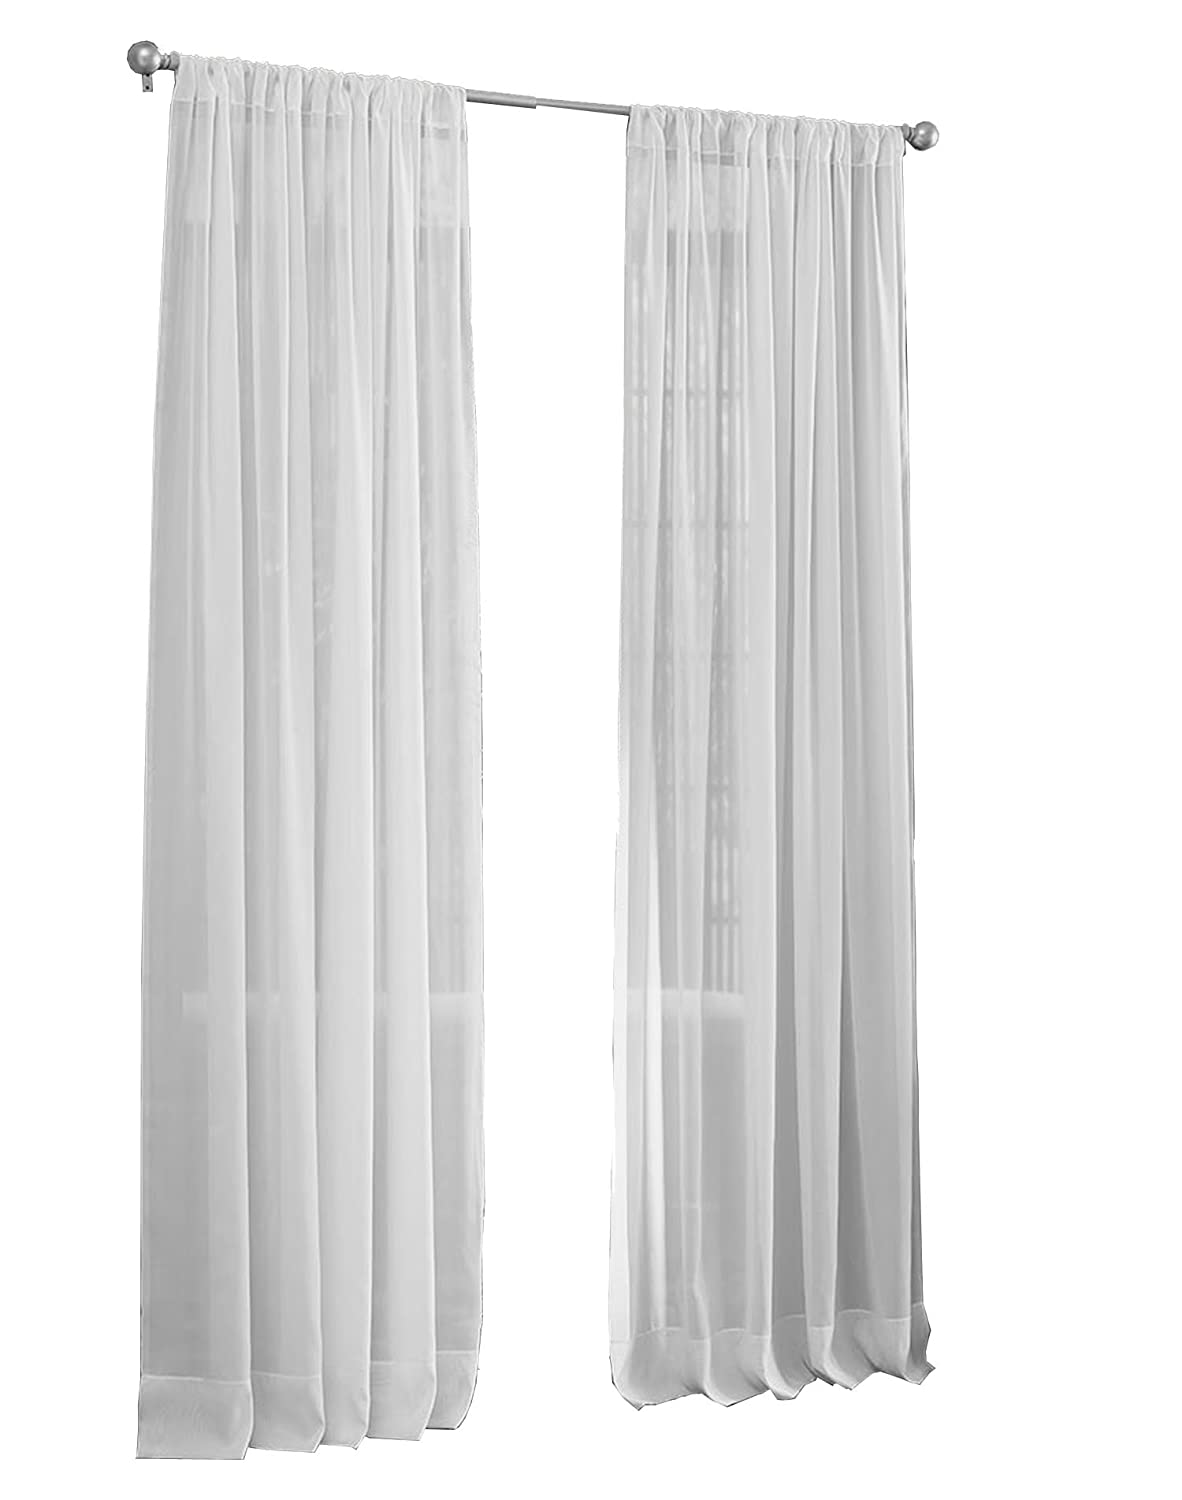 Pack of 1 LA Linen Sheer Voile Drape Panel 72 by 118 Ivory 72 by 118 VoileDrap/_118X72/_Ivory